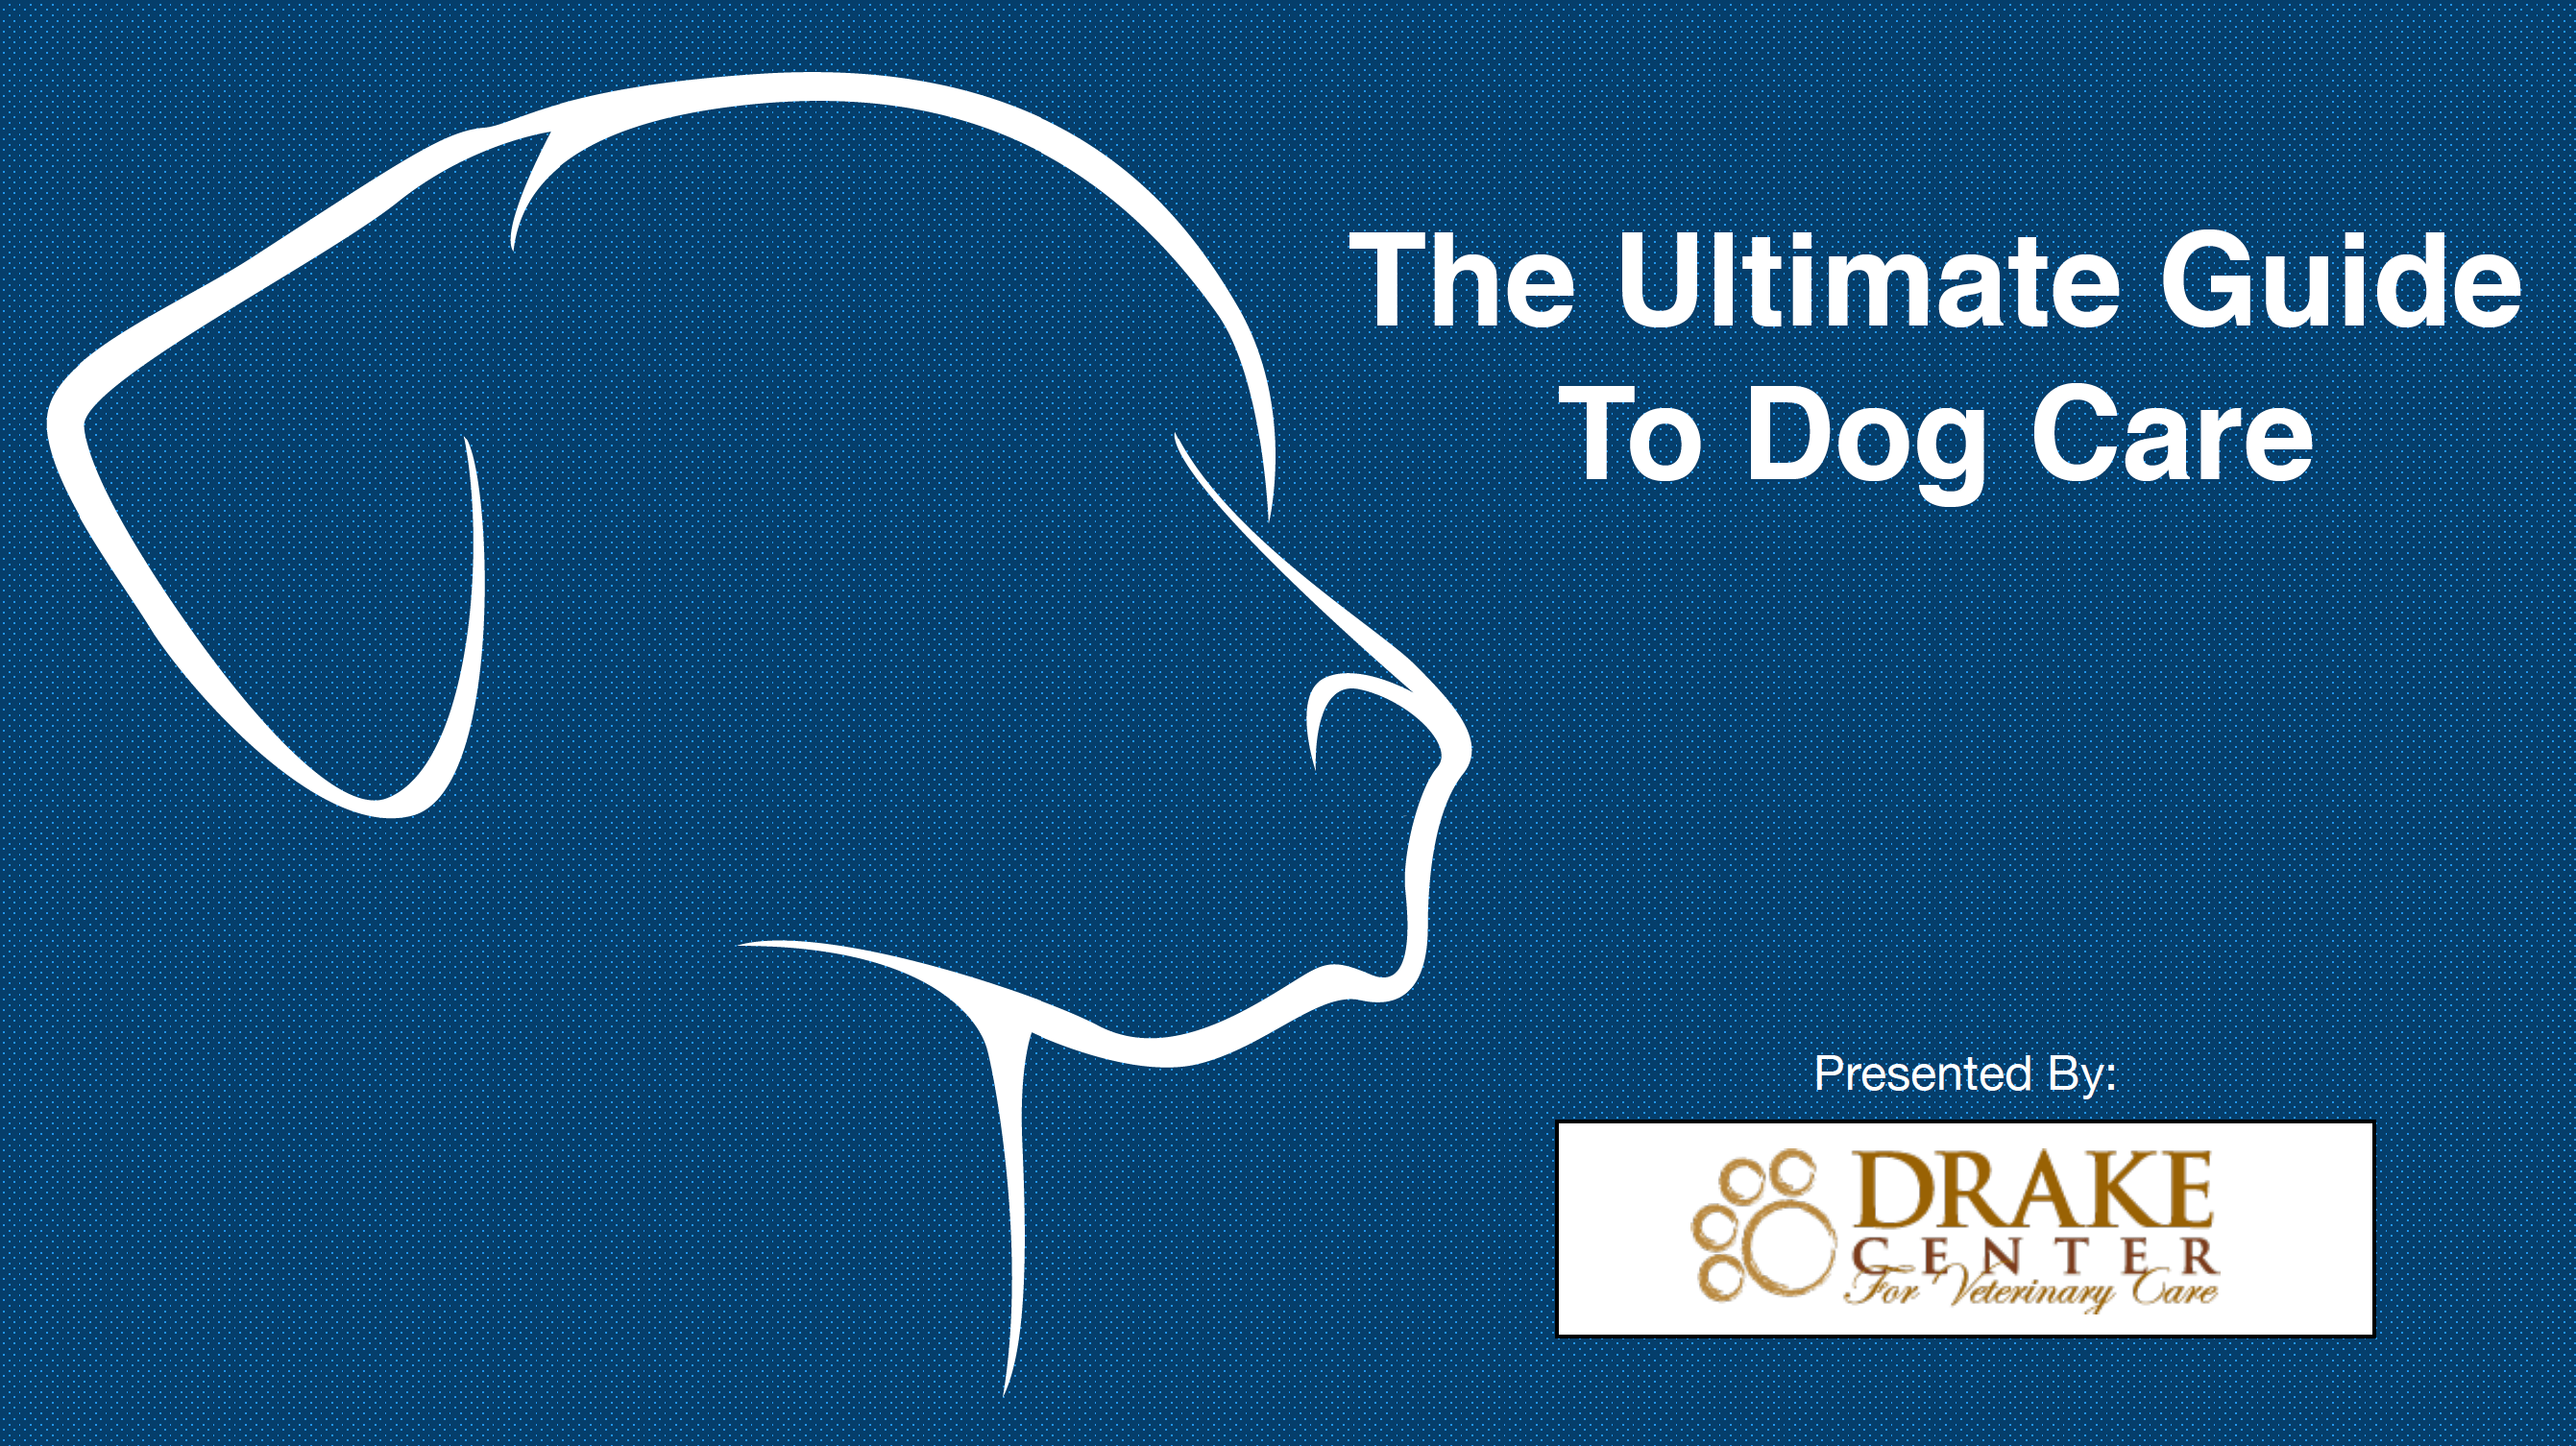 Get The Guide To Dog Care